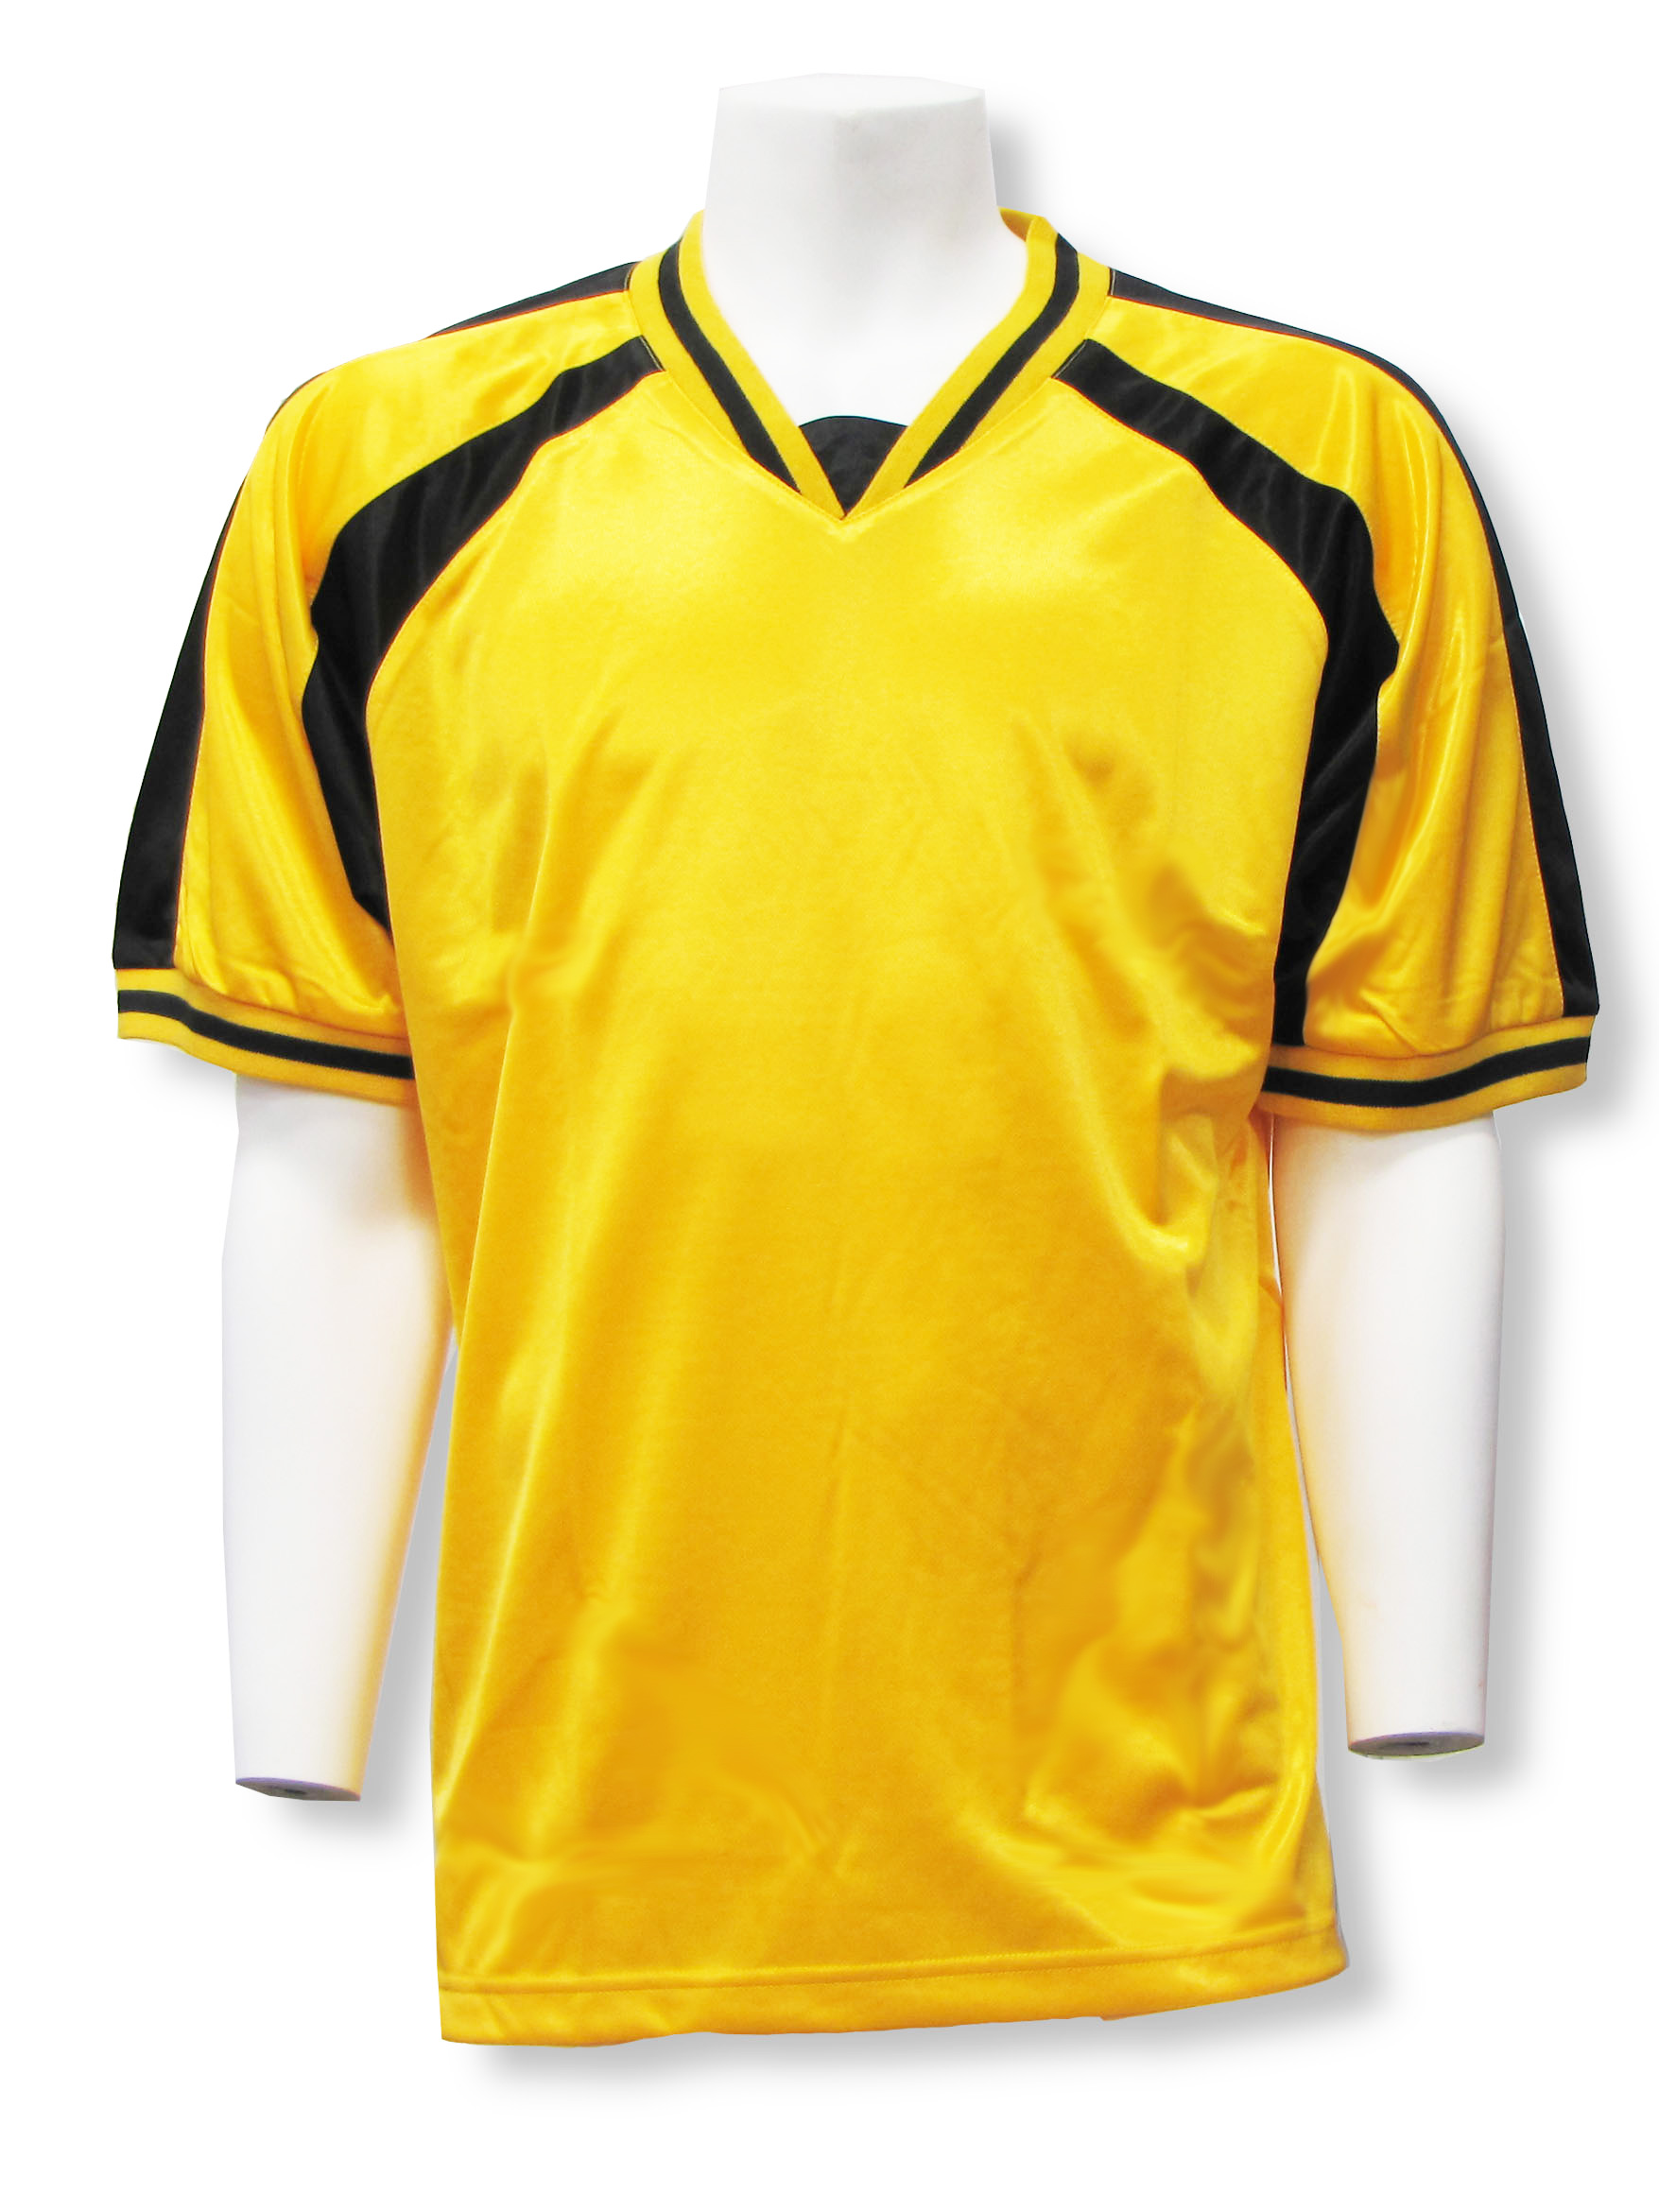 Spitfire soccer jersey in gold/black by Code Four Athletics